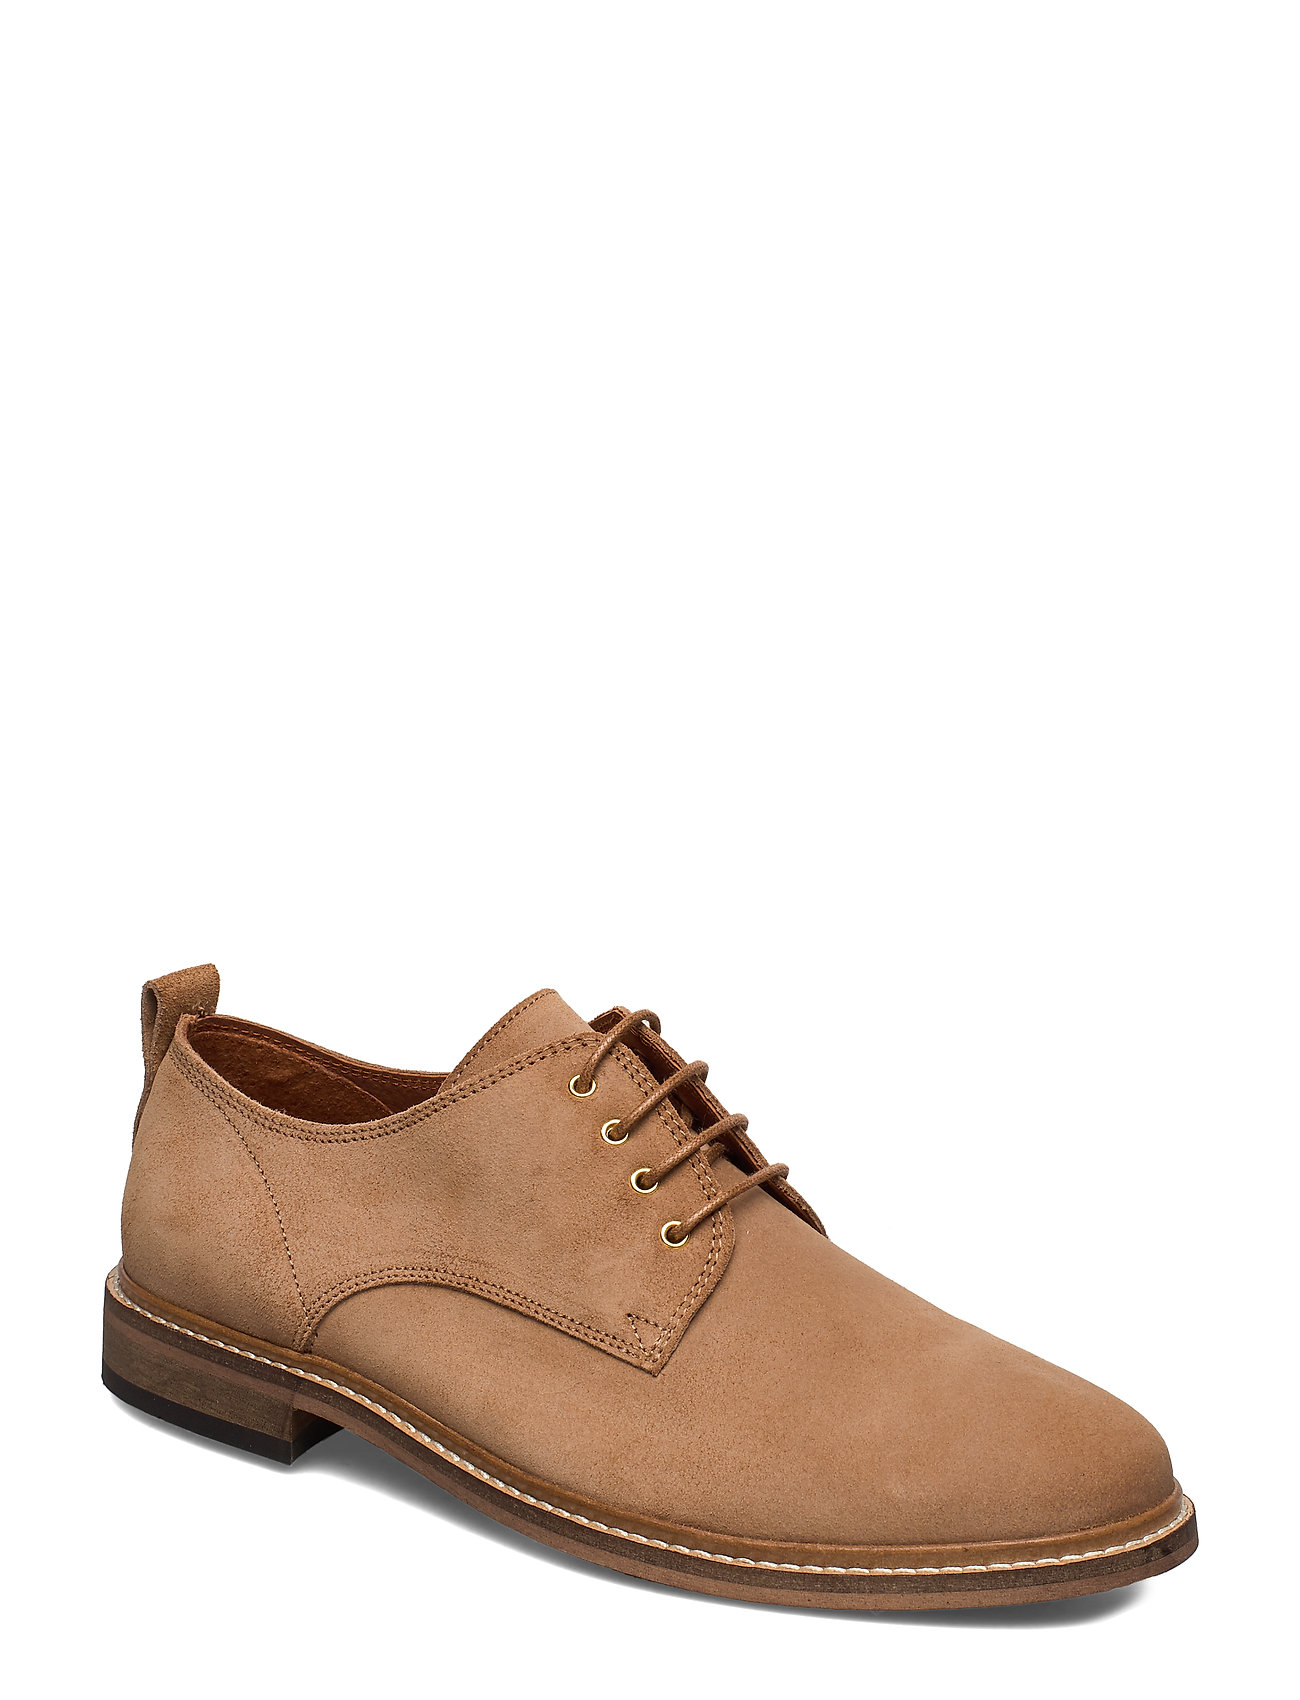 Image of Stb-Javier S Shoes Business Laced Shoes Brun Shoe The Bear (3338944553)